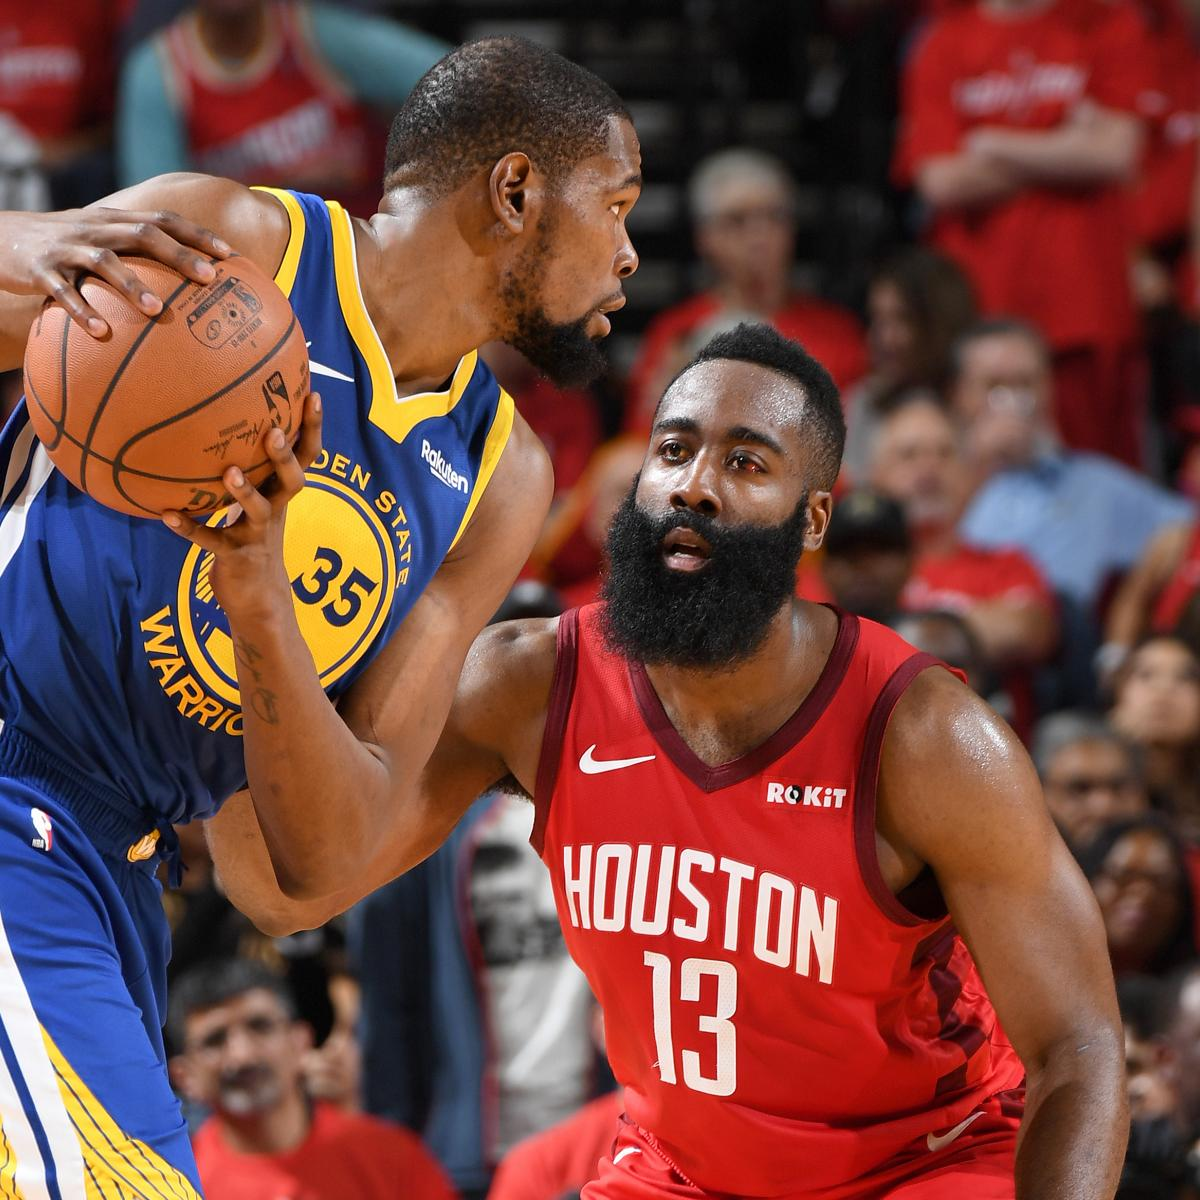 Rockets Vs Warriors Harden: Highlights: Watch Kevin Durant, James Harden Duel In